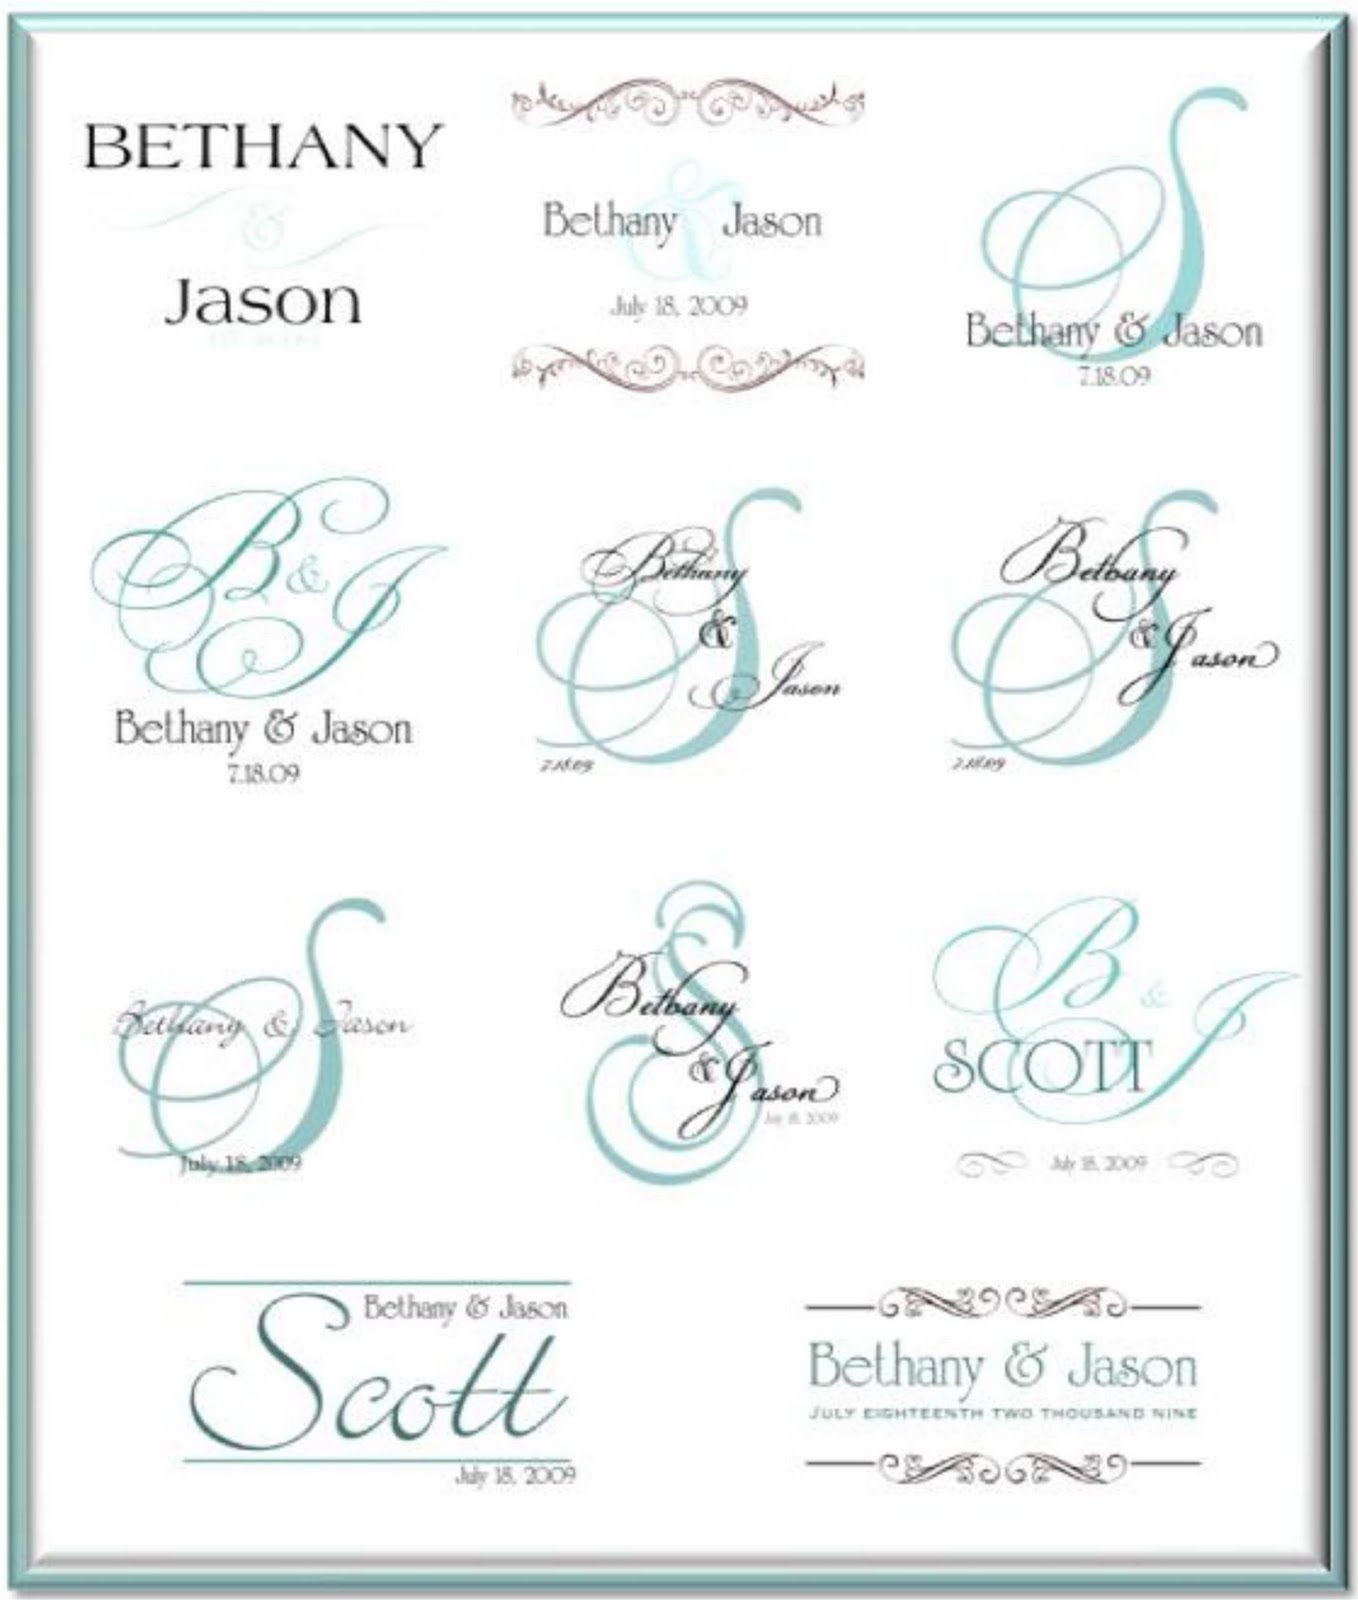 Free Wedding Invitation Templates Wedding Invitations - Wedding invitation templates: beach theme wedding invitation templates free